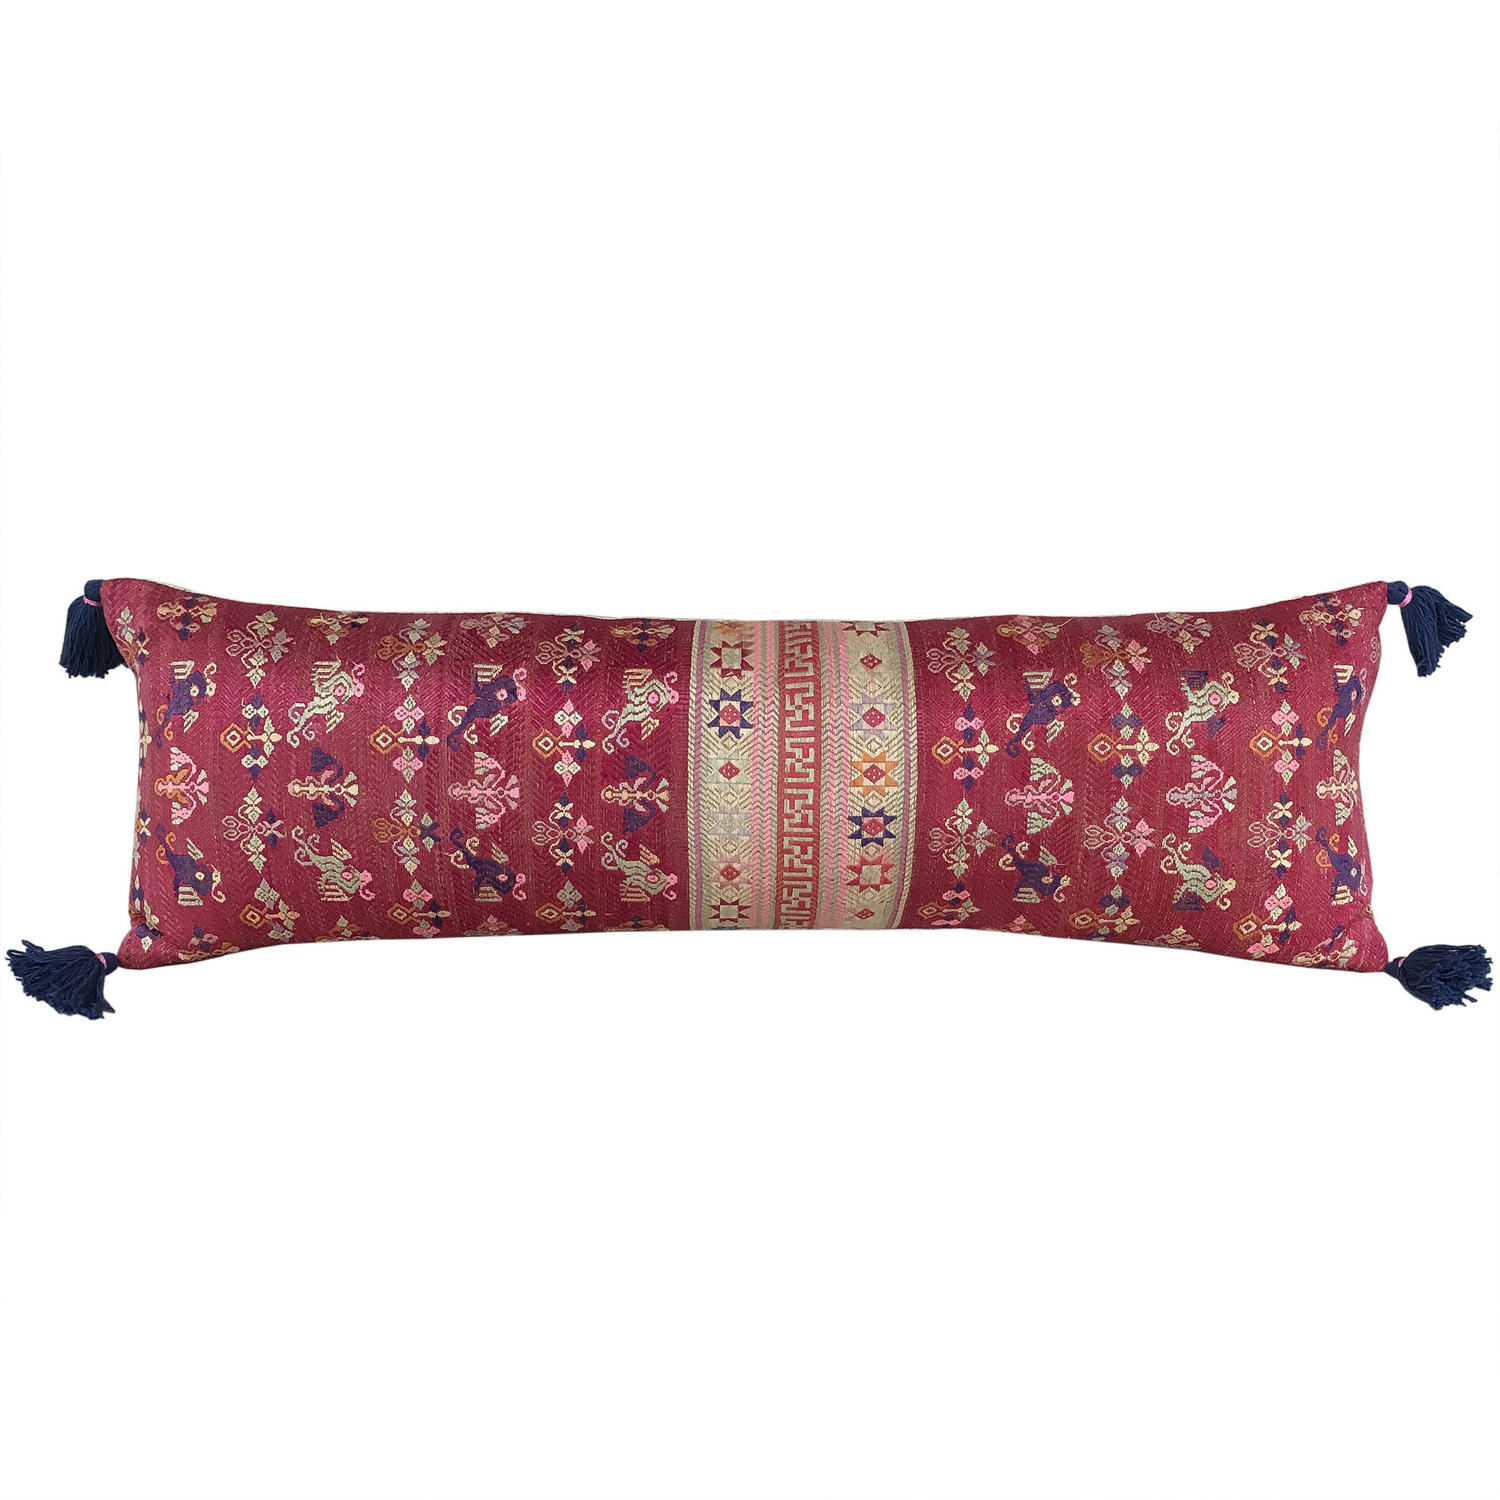 Exquisite Maonan Wedding Blanket Cushion